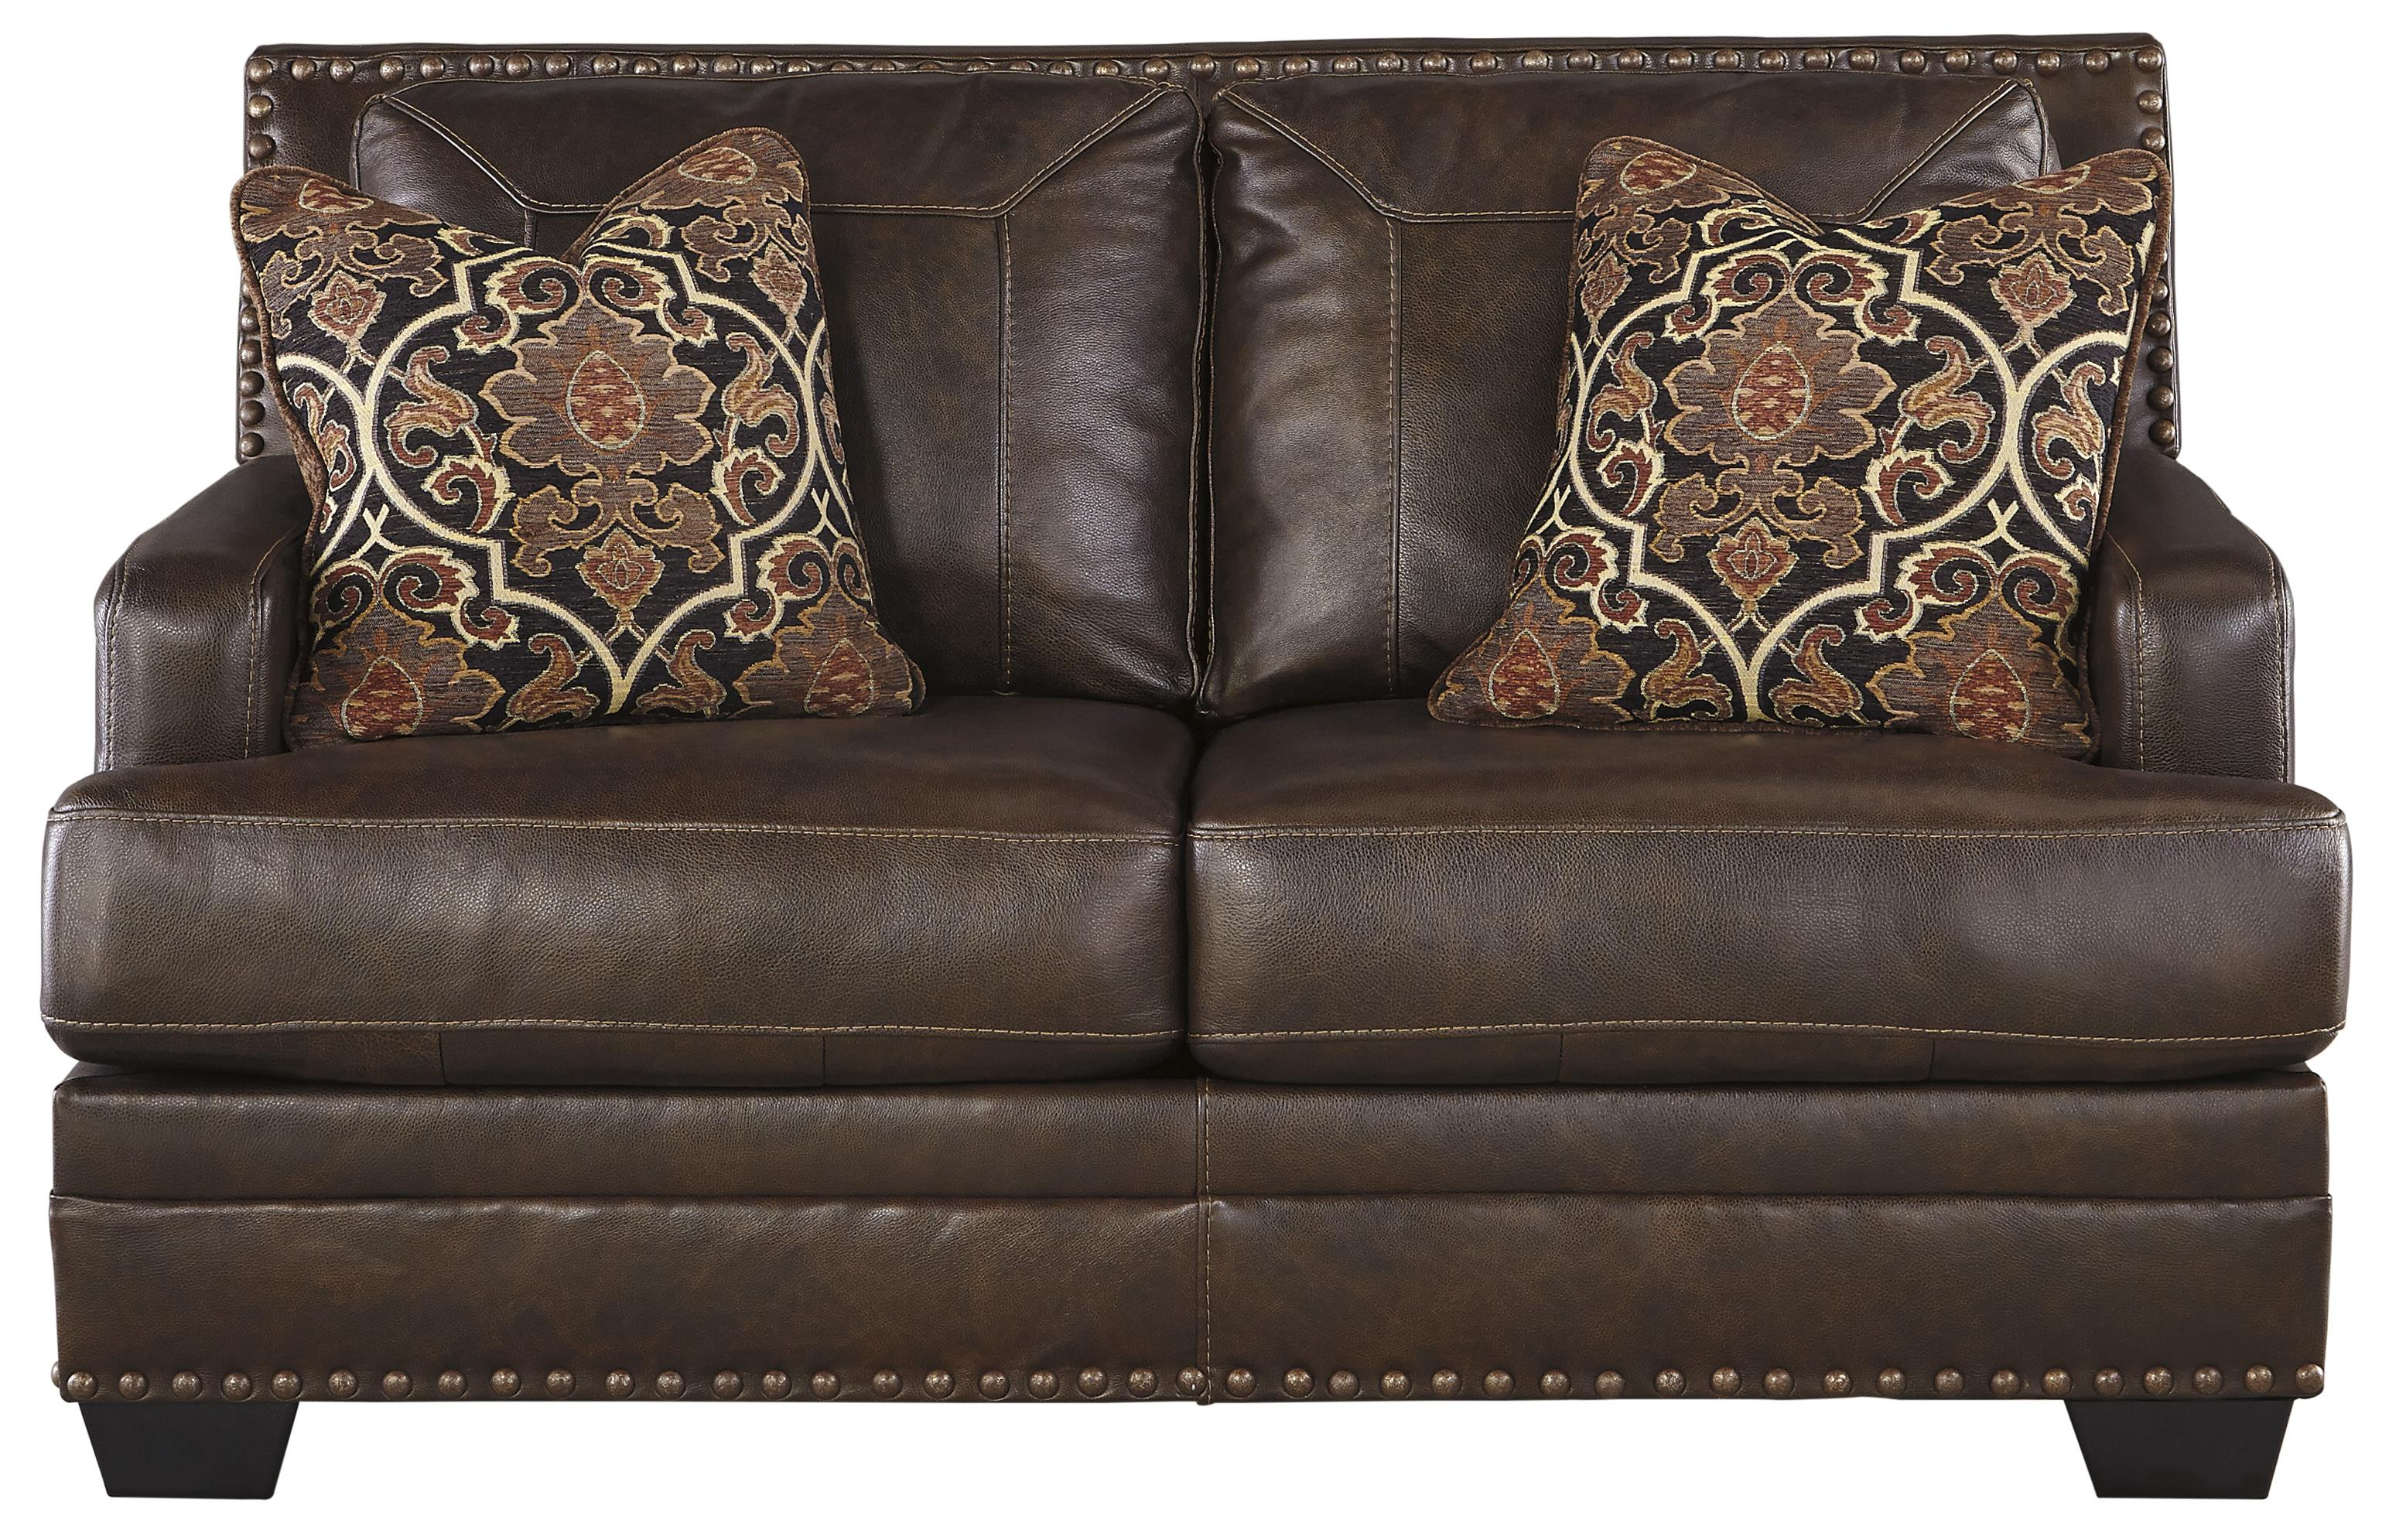 Signature Design by Ashley Corvan Loveseat - Item Number: 6910335